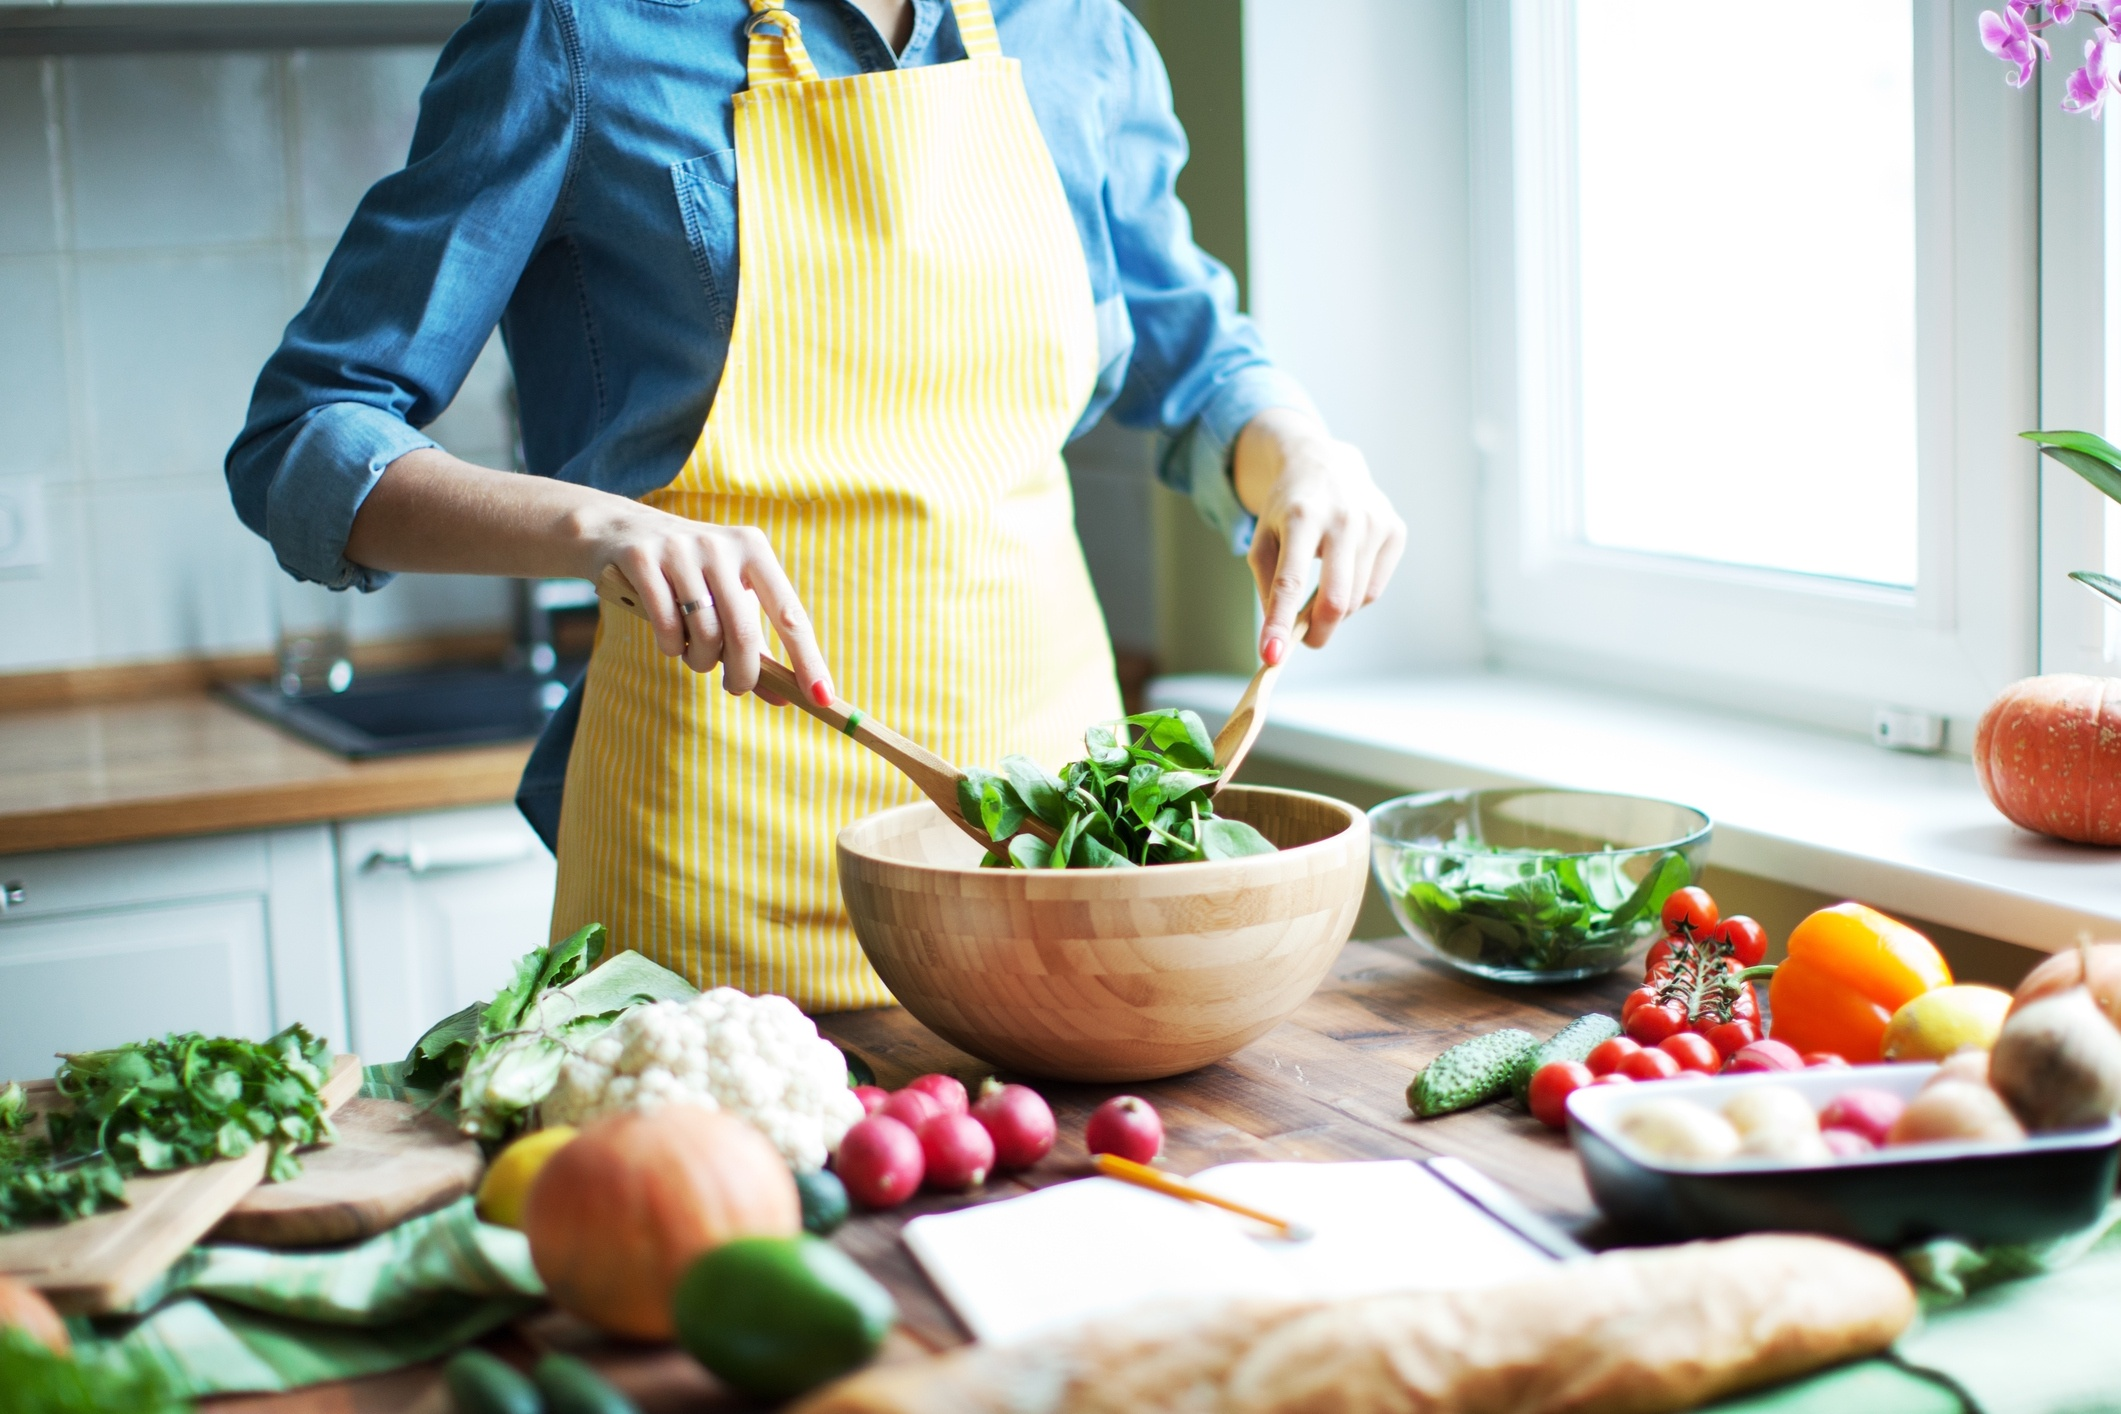 A woman preparing a healthy salad